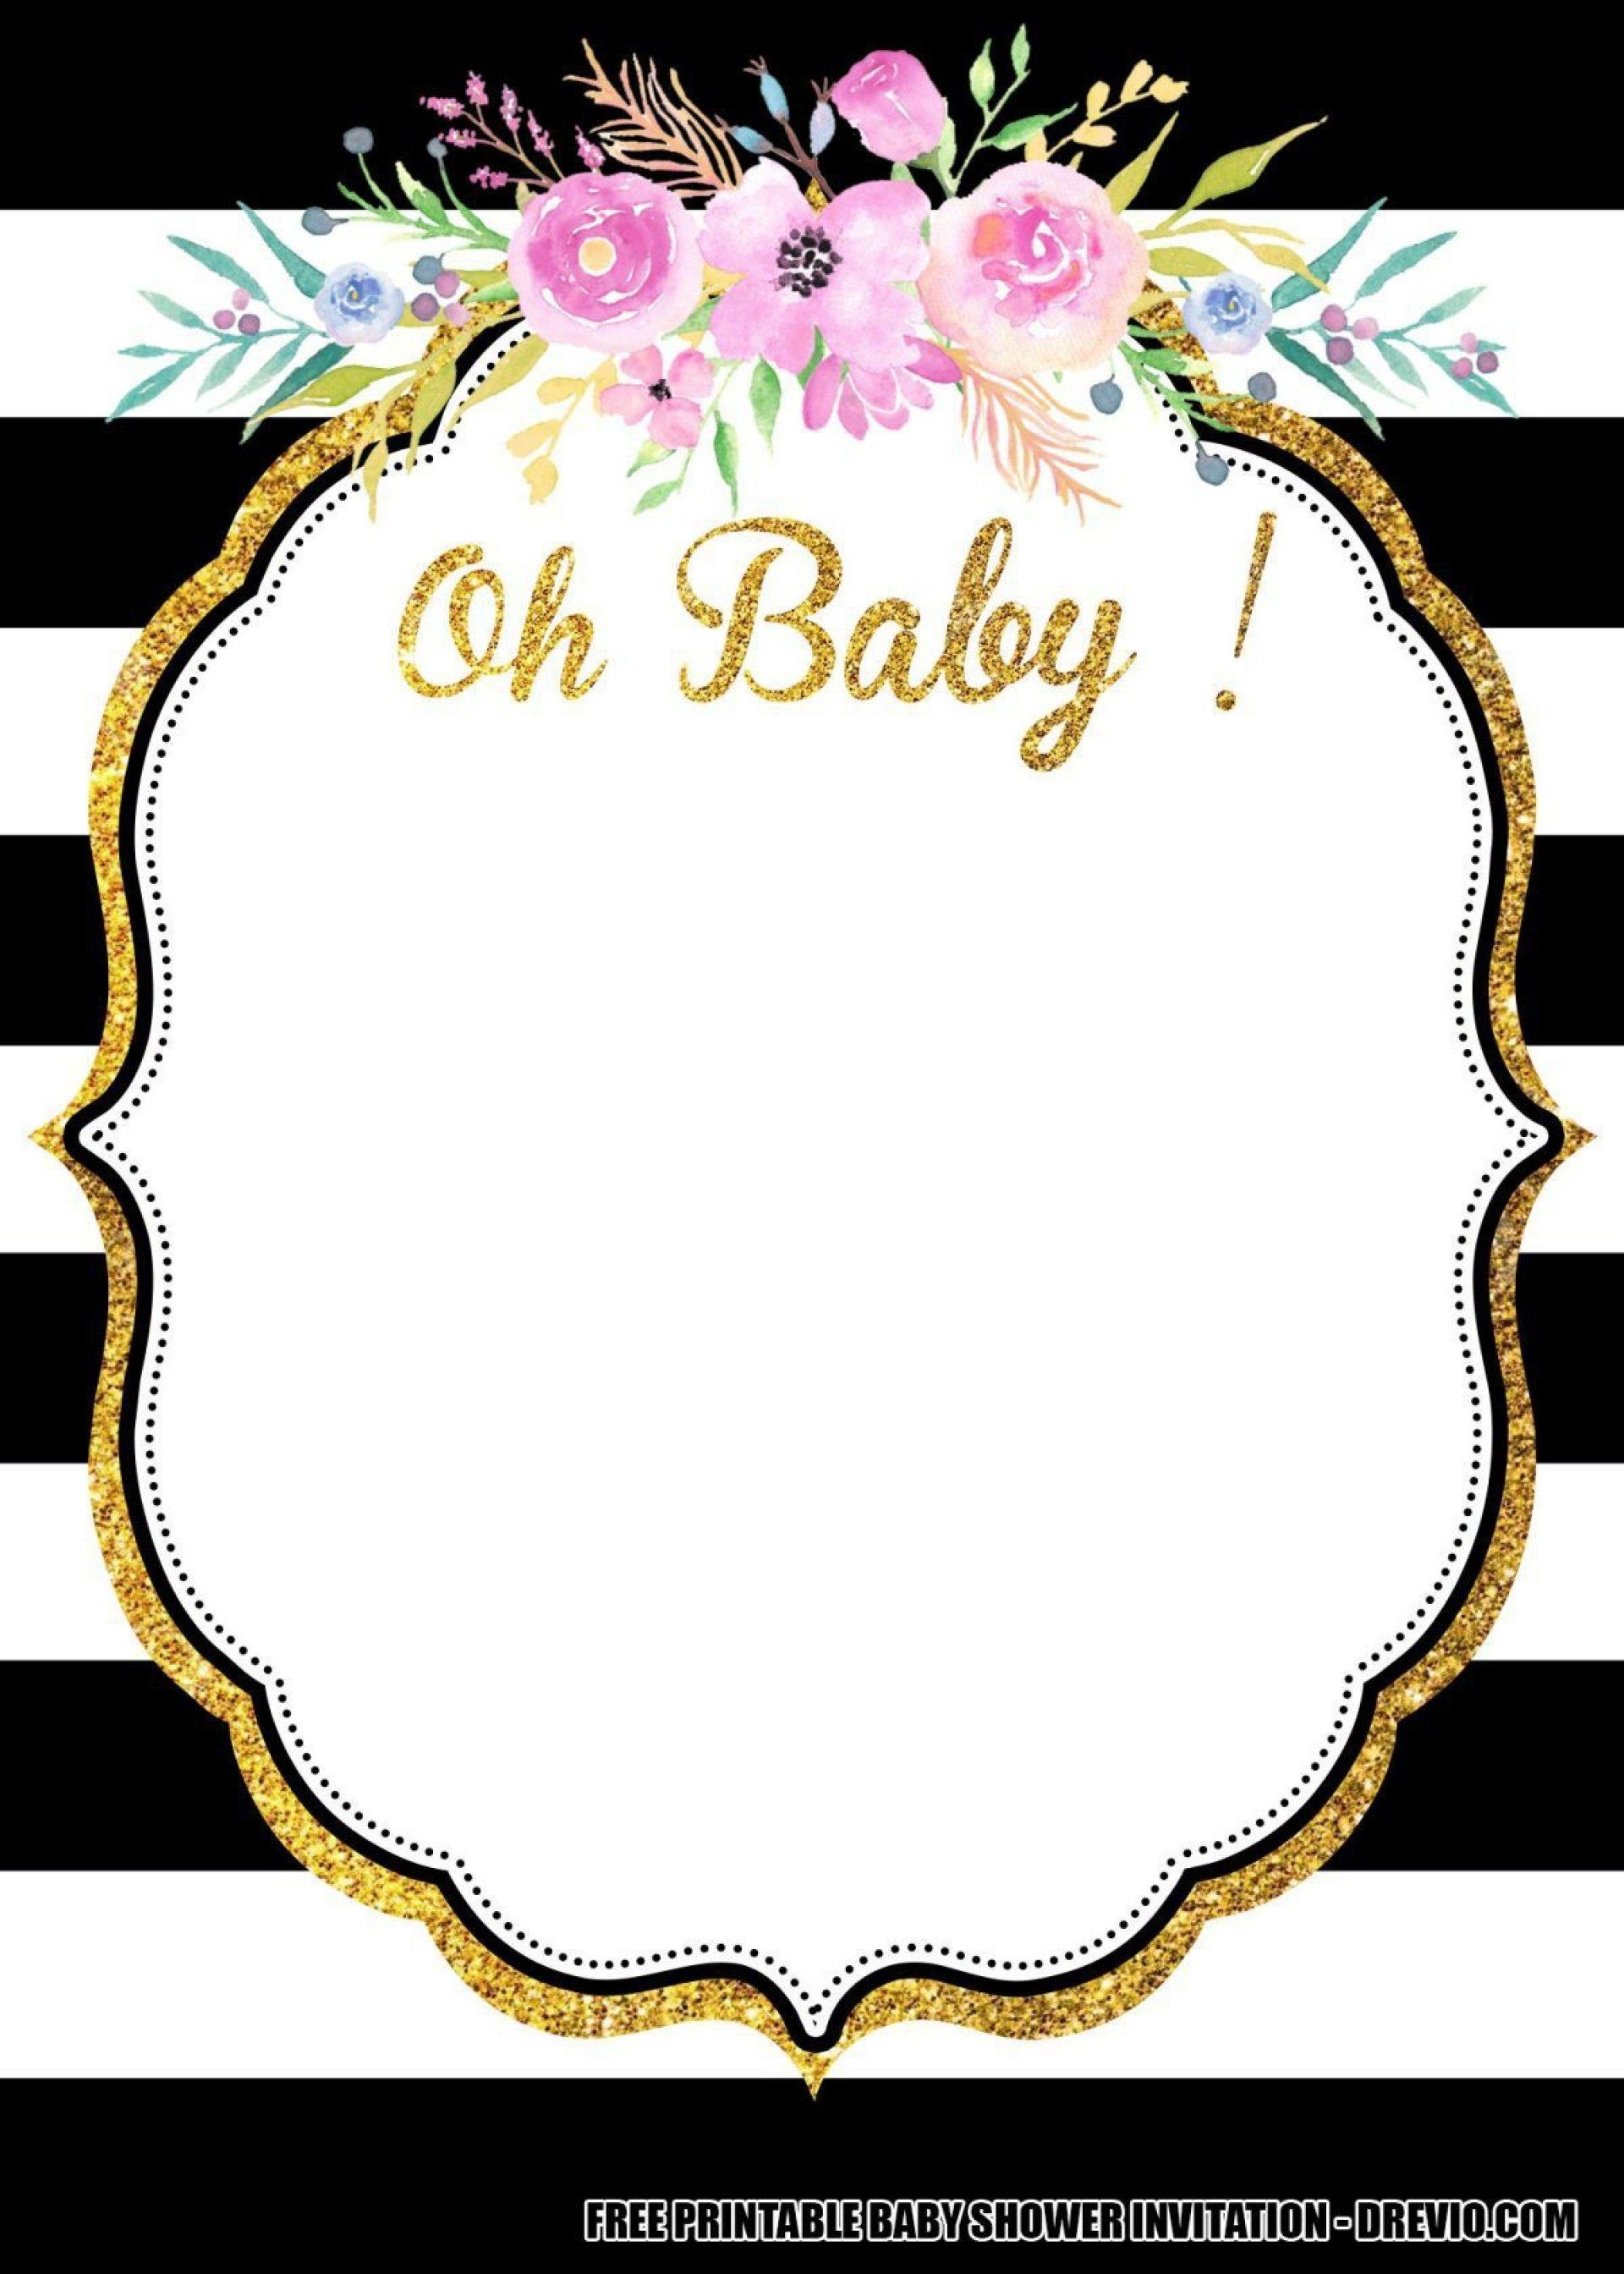 010 Incredible Baby Shower Invitation Card Template Free Download Inspiration  Indian1920